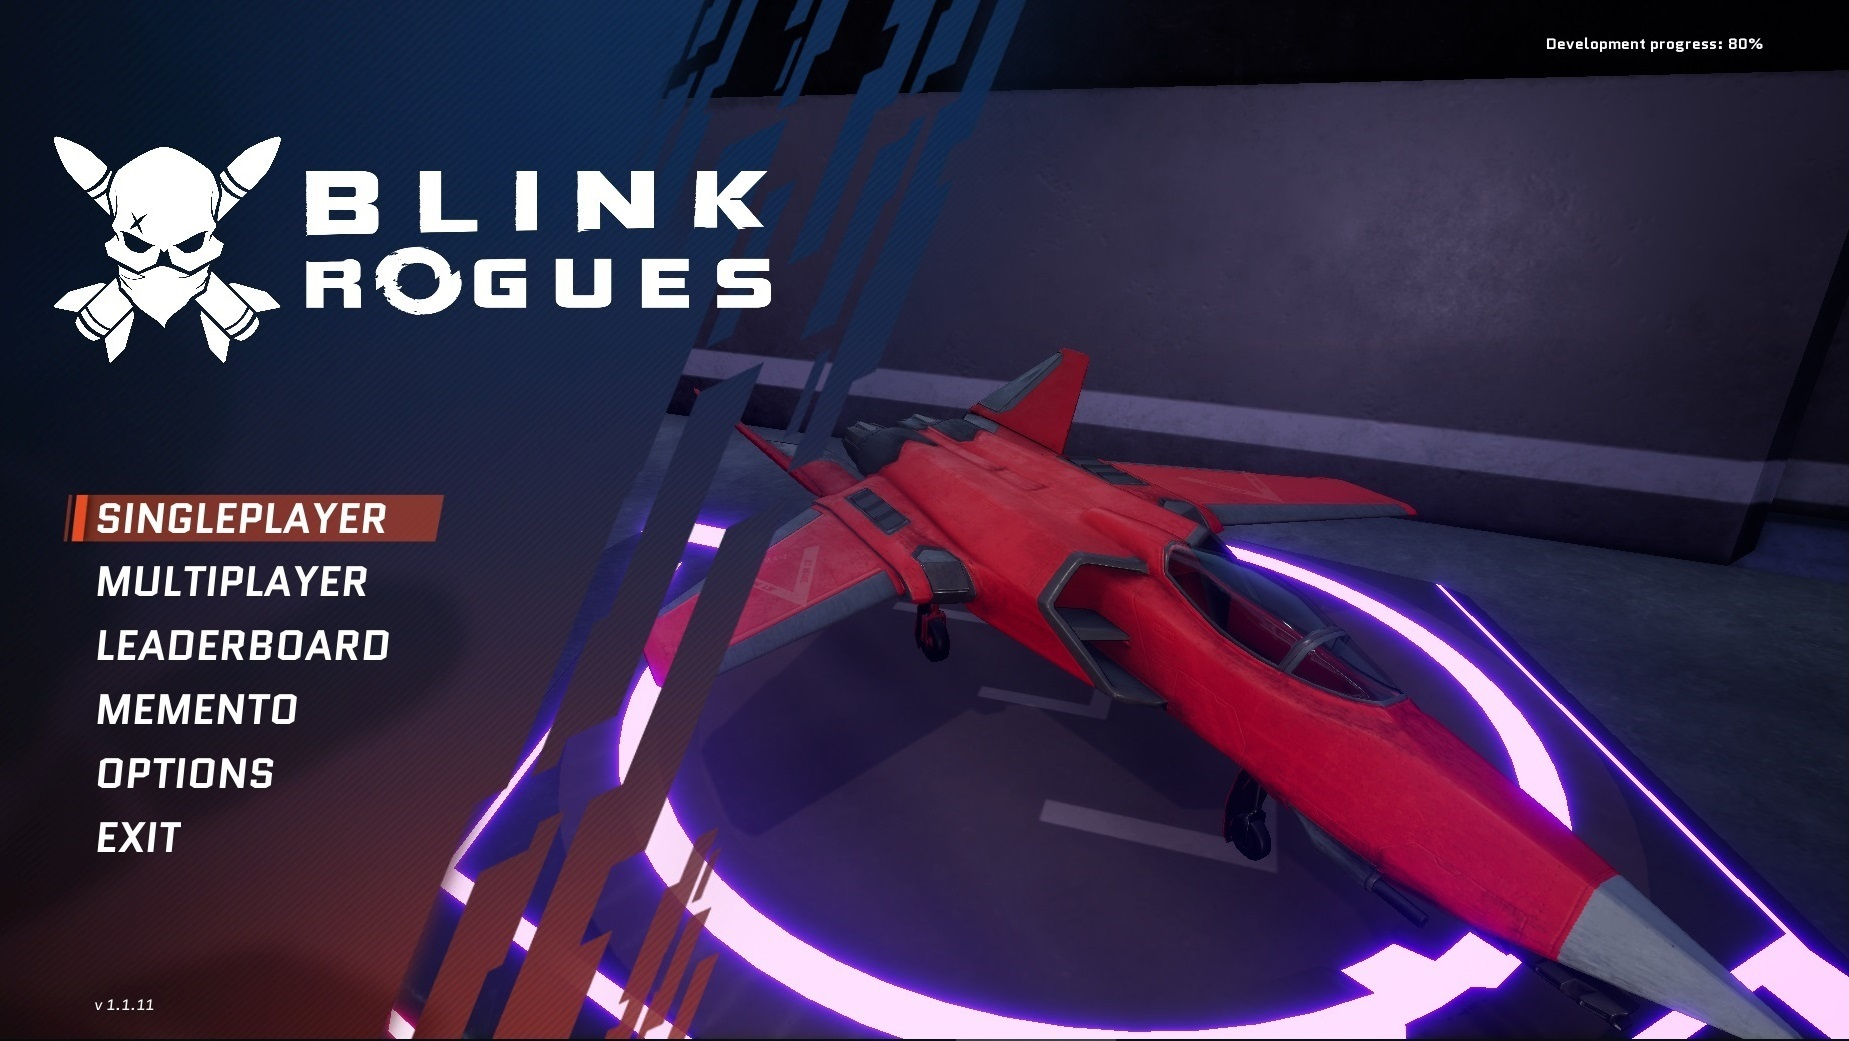 Blink: Rogues :: Spring News - Unveiling the new UI